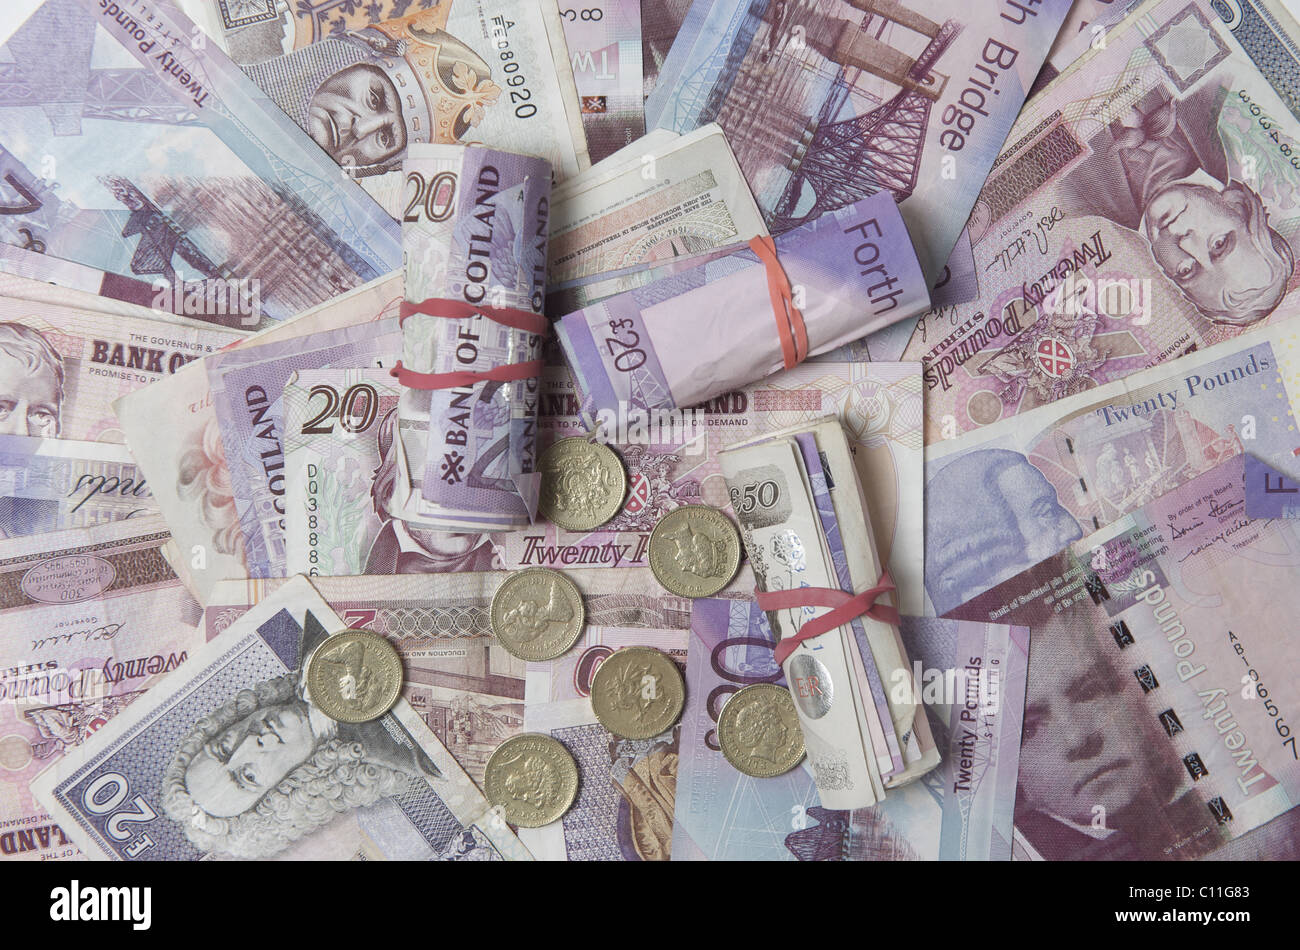 pile of pound notes, sterling - Stock Image